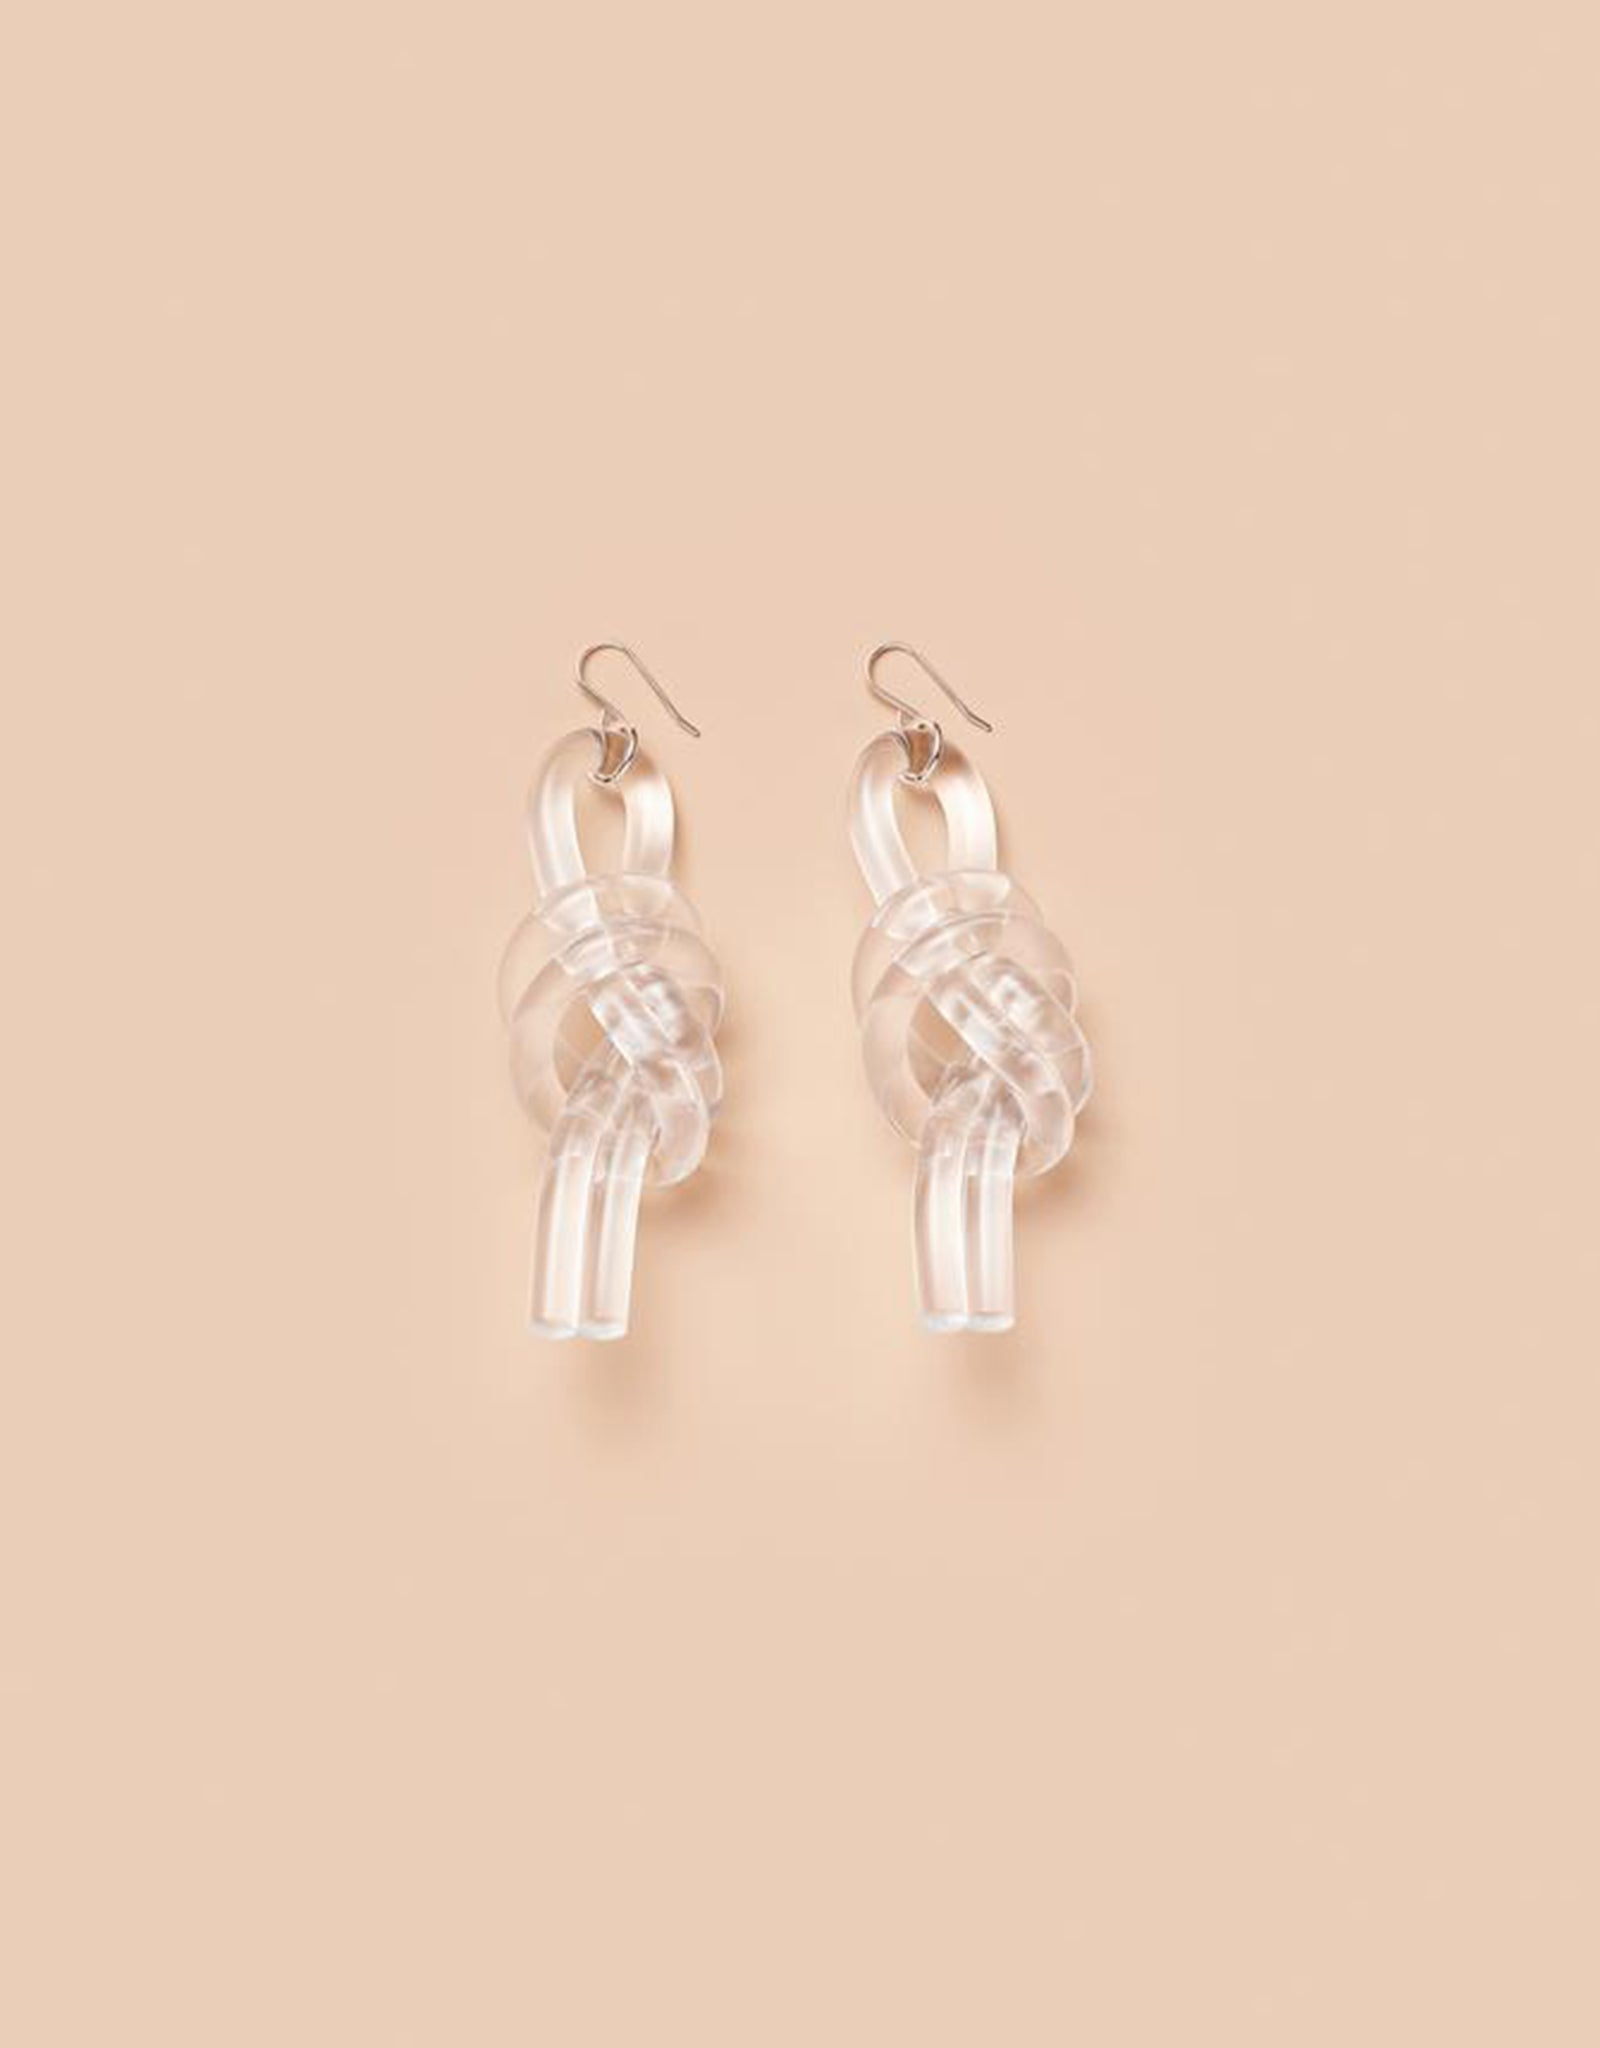 Transparent Double Knot Earrings by Corey Moranis on soft pink background. Available at FAWN Toronto.